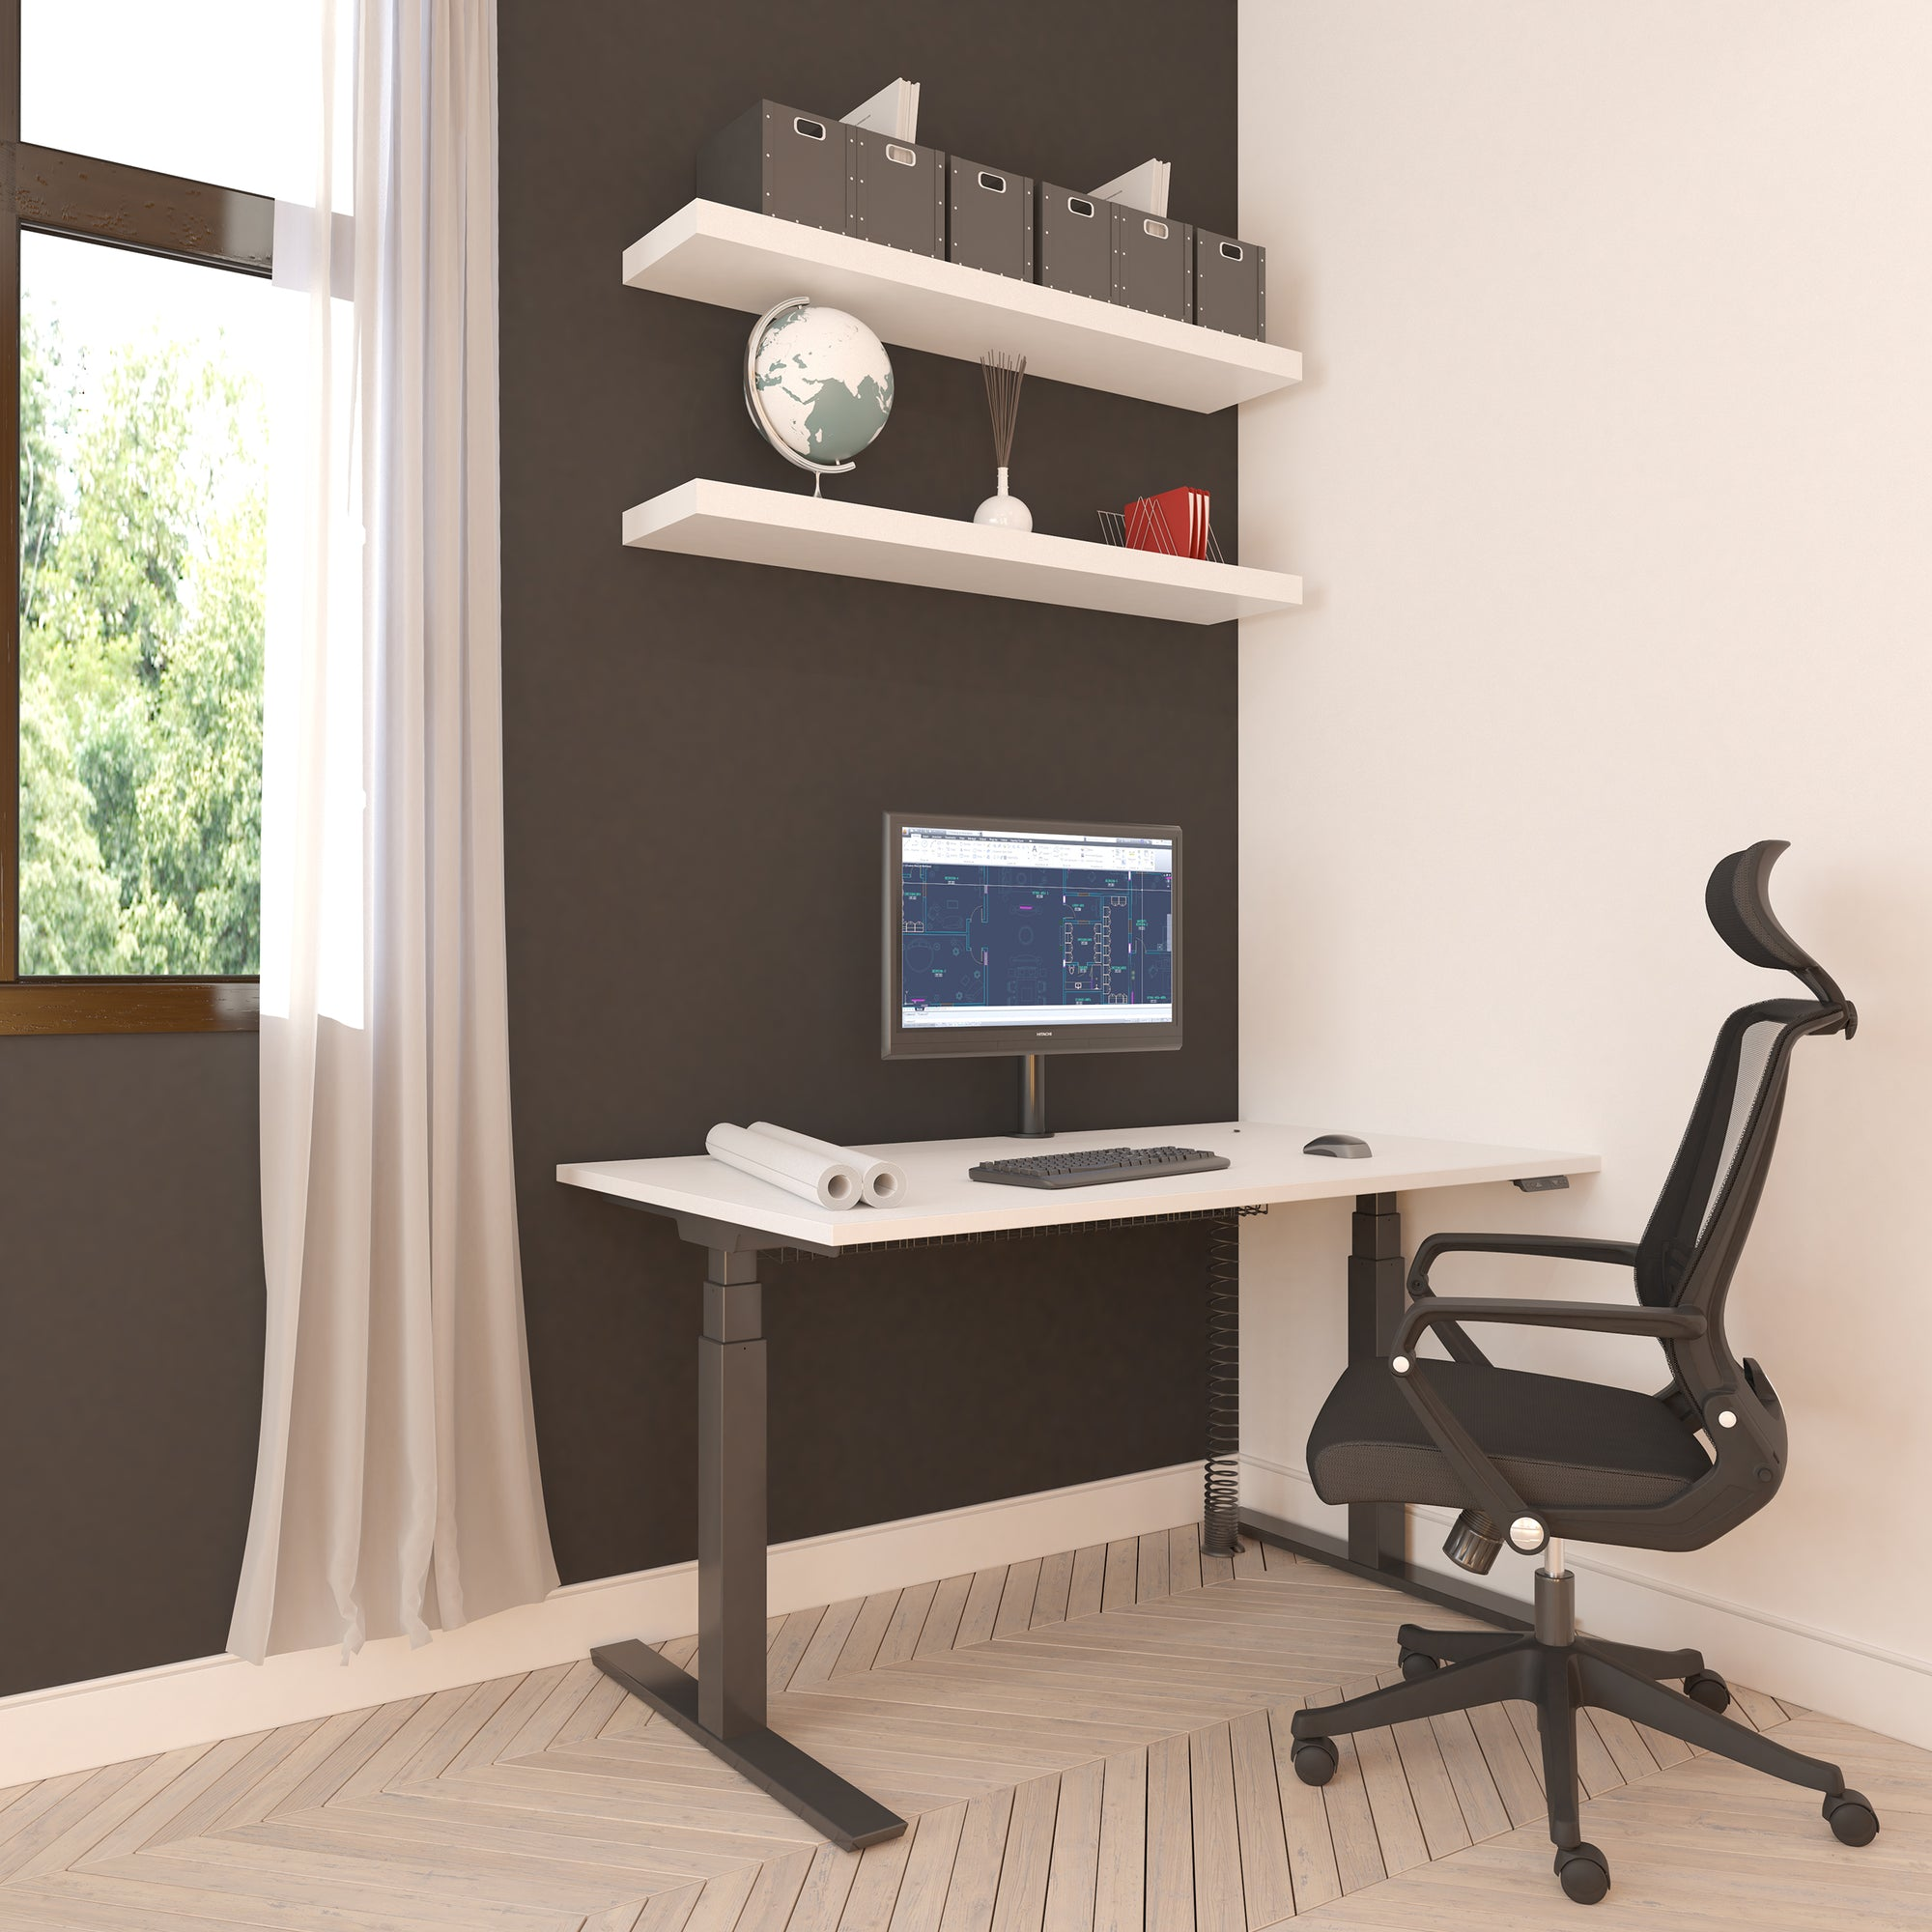 row displays en height ergo slm sl t rooms desk plaatwerk single setting control with view lowest manually front tol in products adjustable of